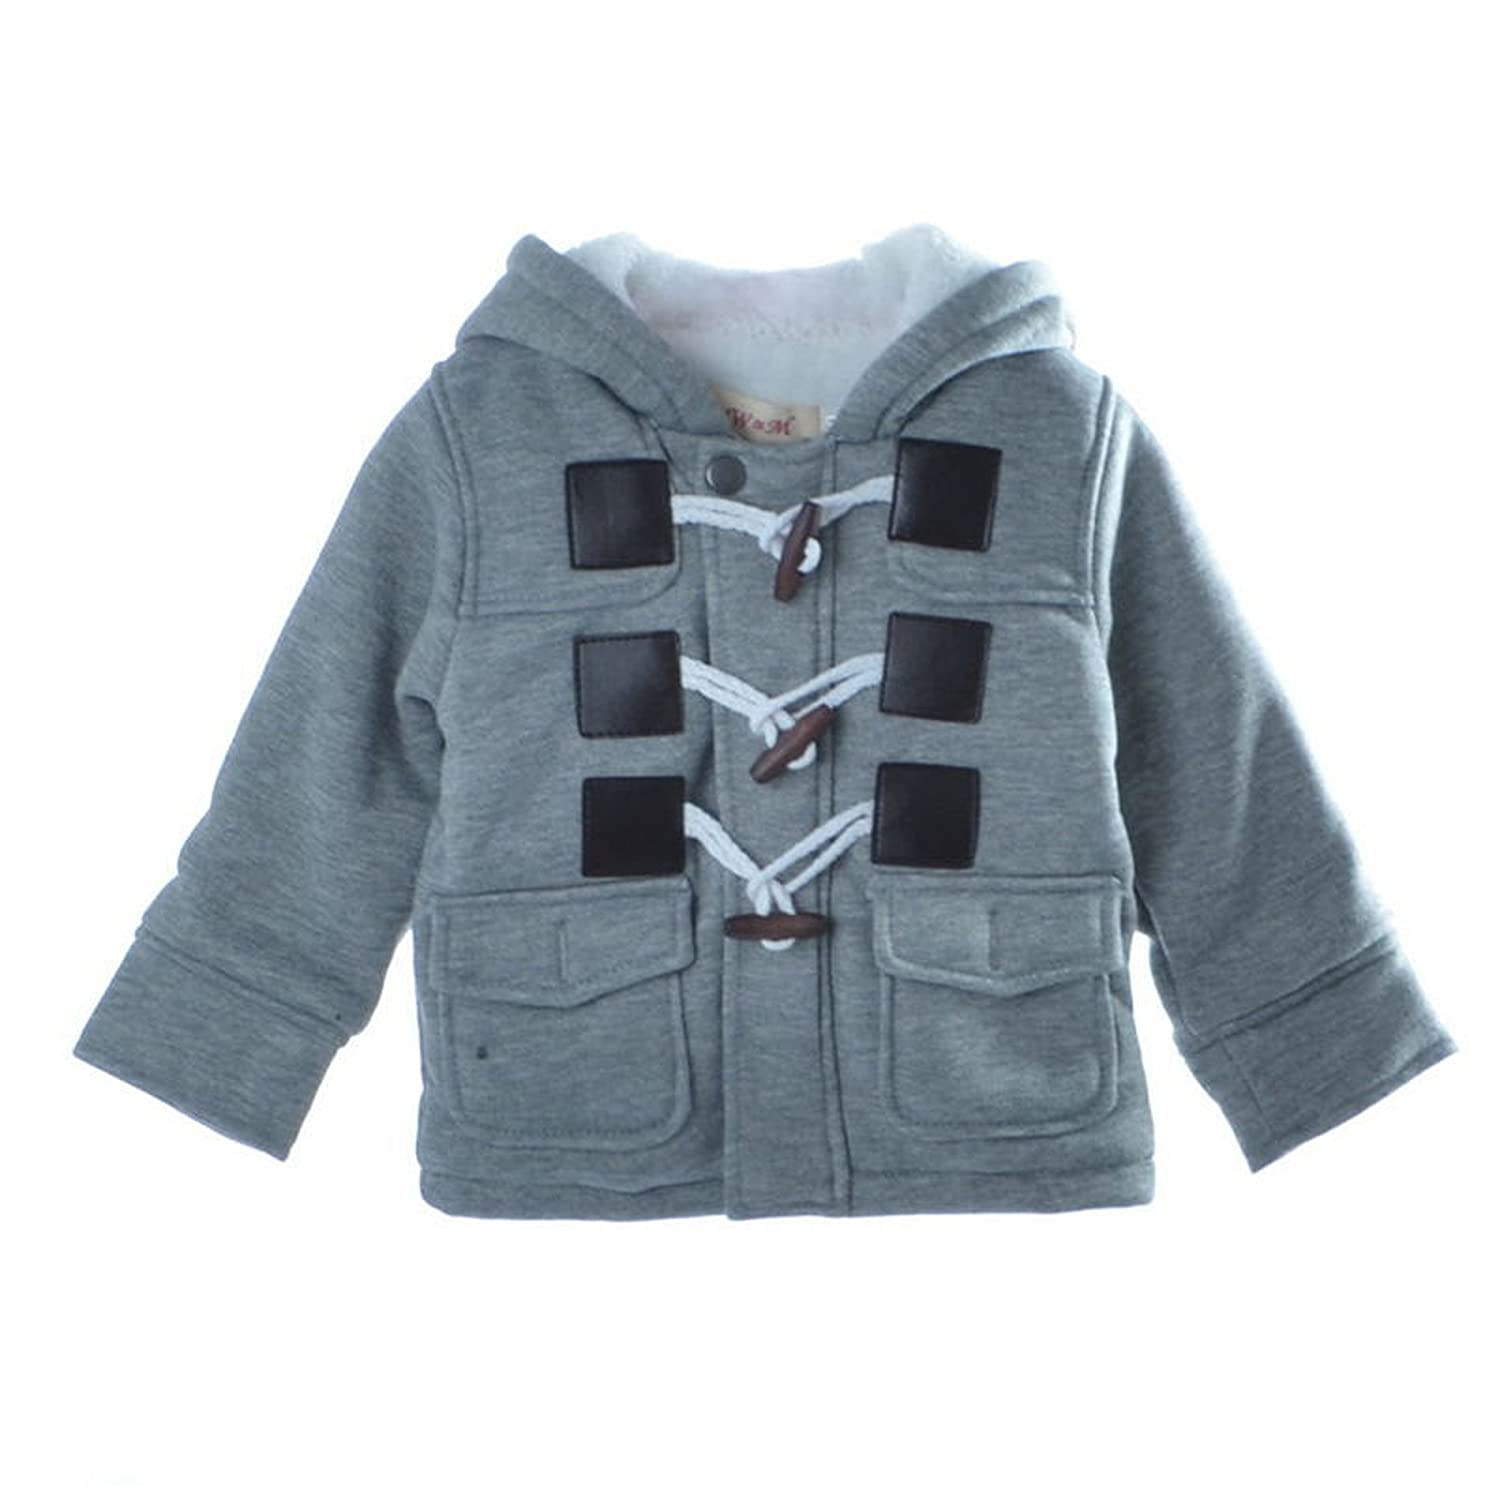 Comfy Toddler Fleece Hooded Baby Jackets Horn Button Outerwear Boy Snowsuit Warm Clothes Cute Kids Baby Boys Winter Coat